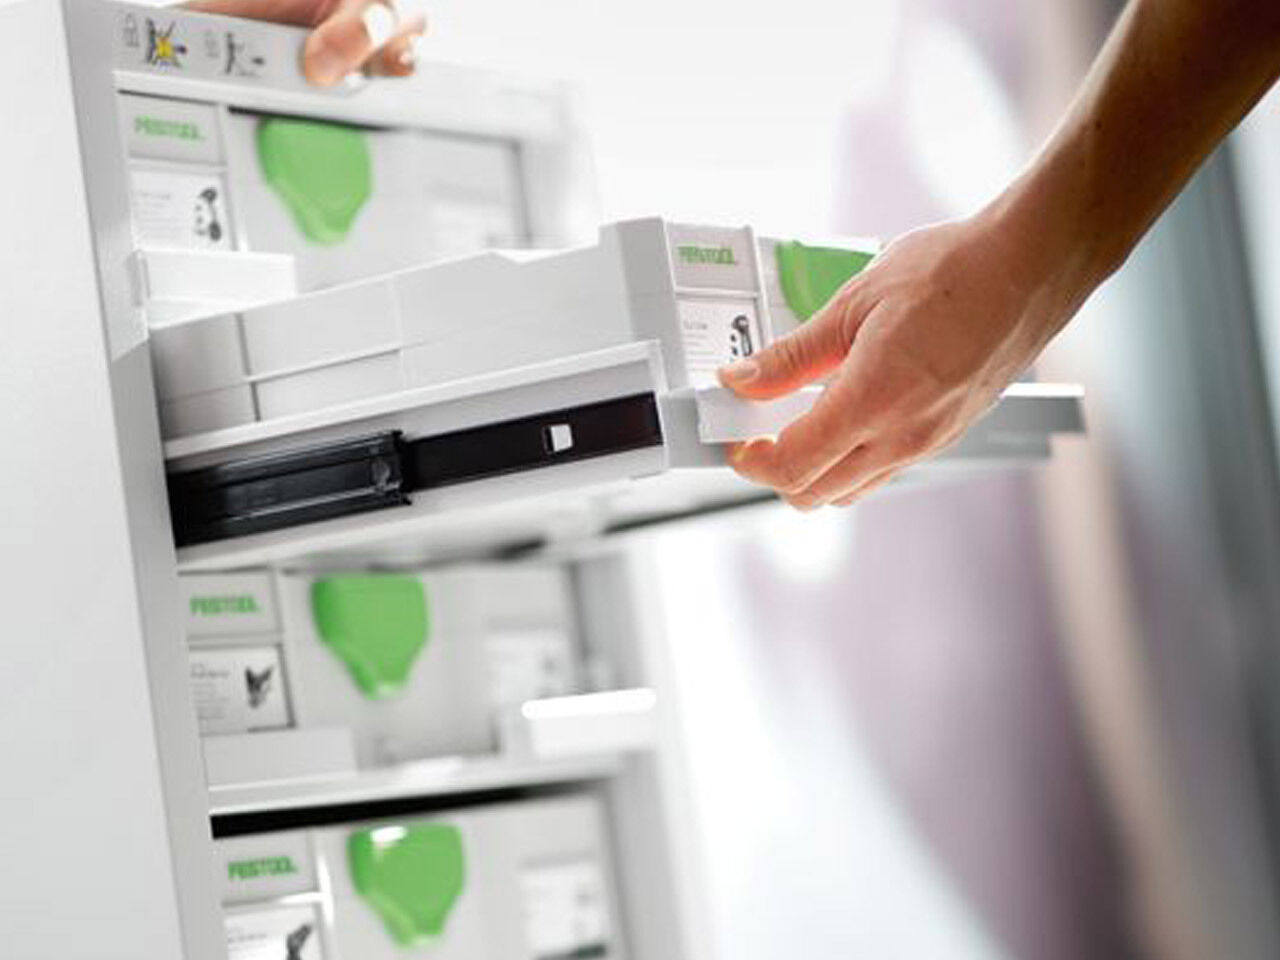 Festool 491922 SYS-PORT 1000/2 Storage System System System Systainer-Port - 5 Drawers d7f71d